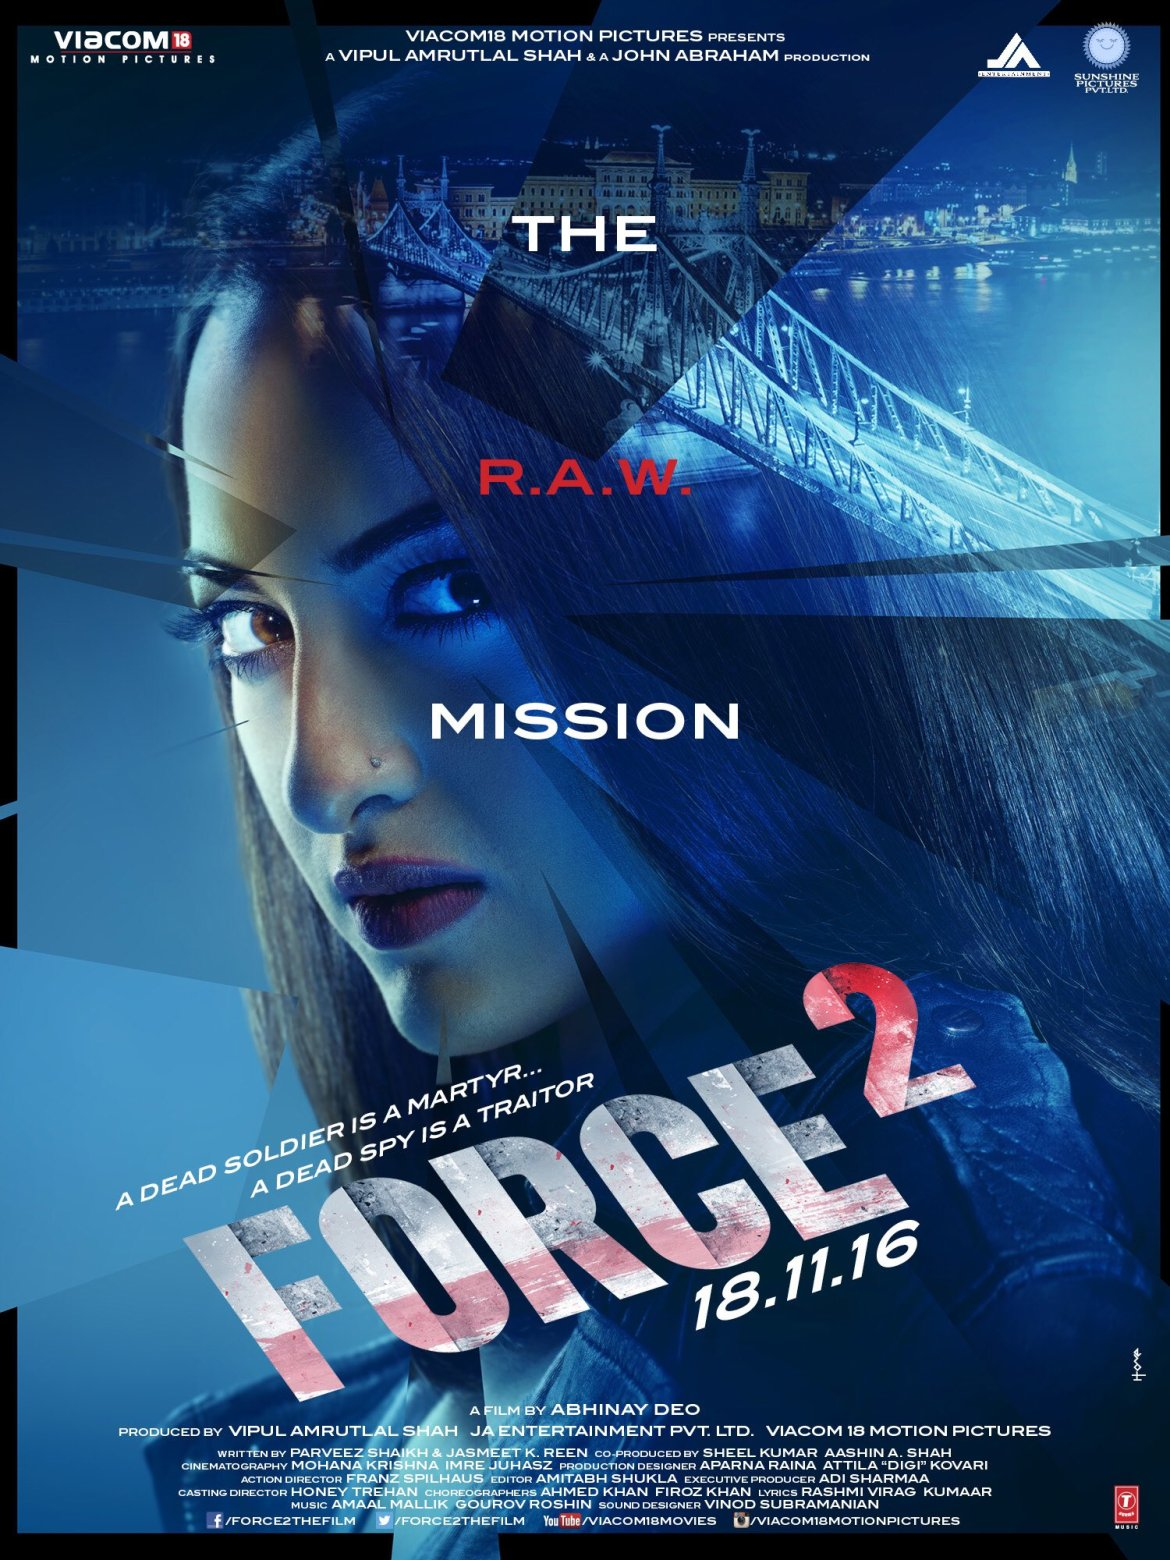 Force 2 Movie Release Date Ft. John Abraham And Sonakshi Sinha